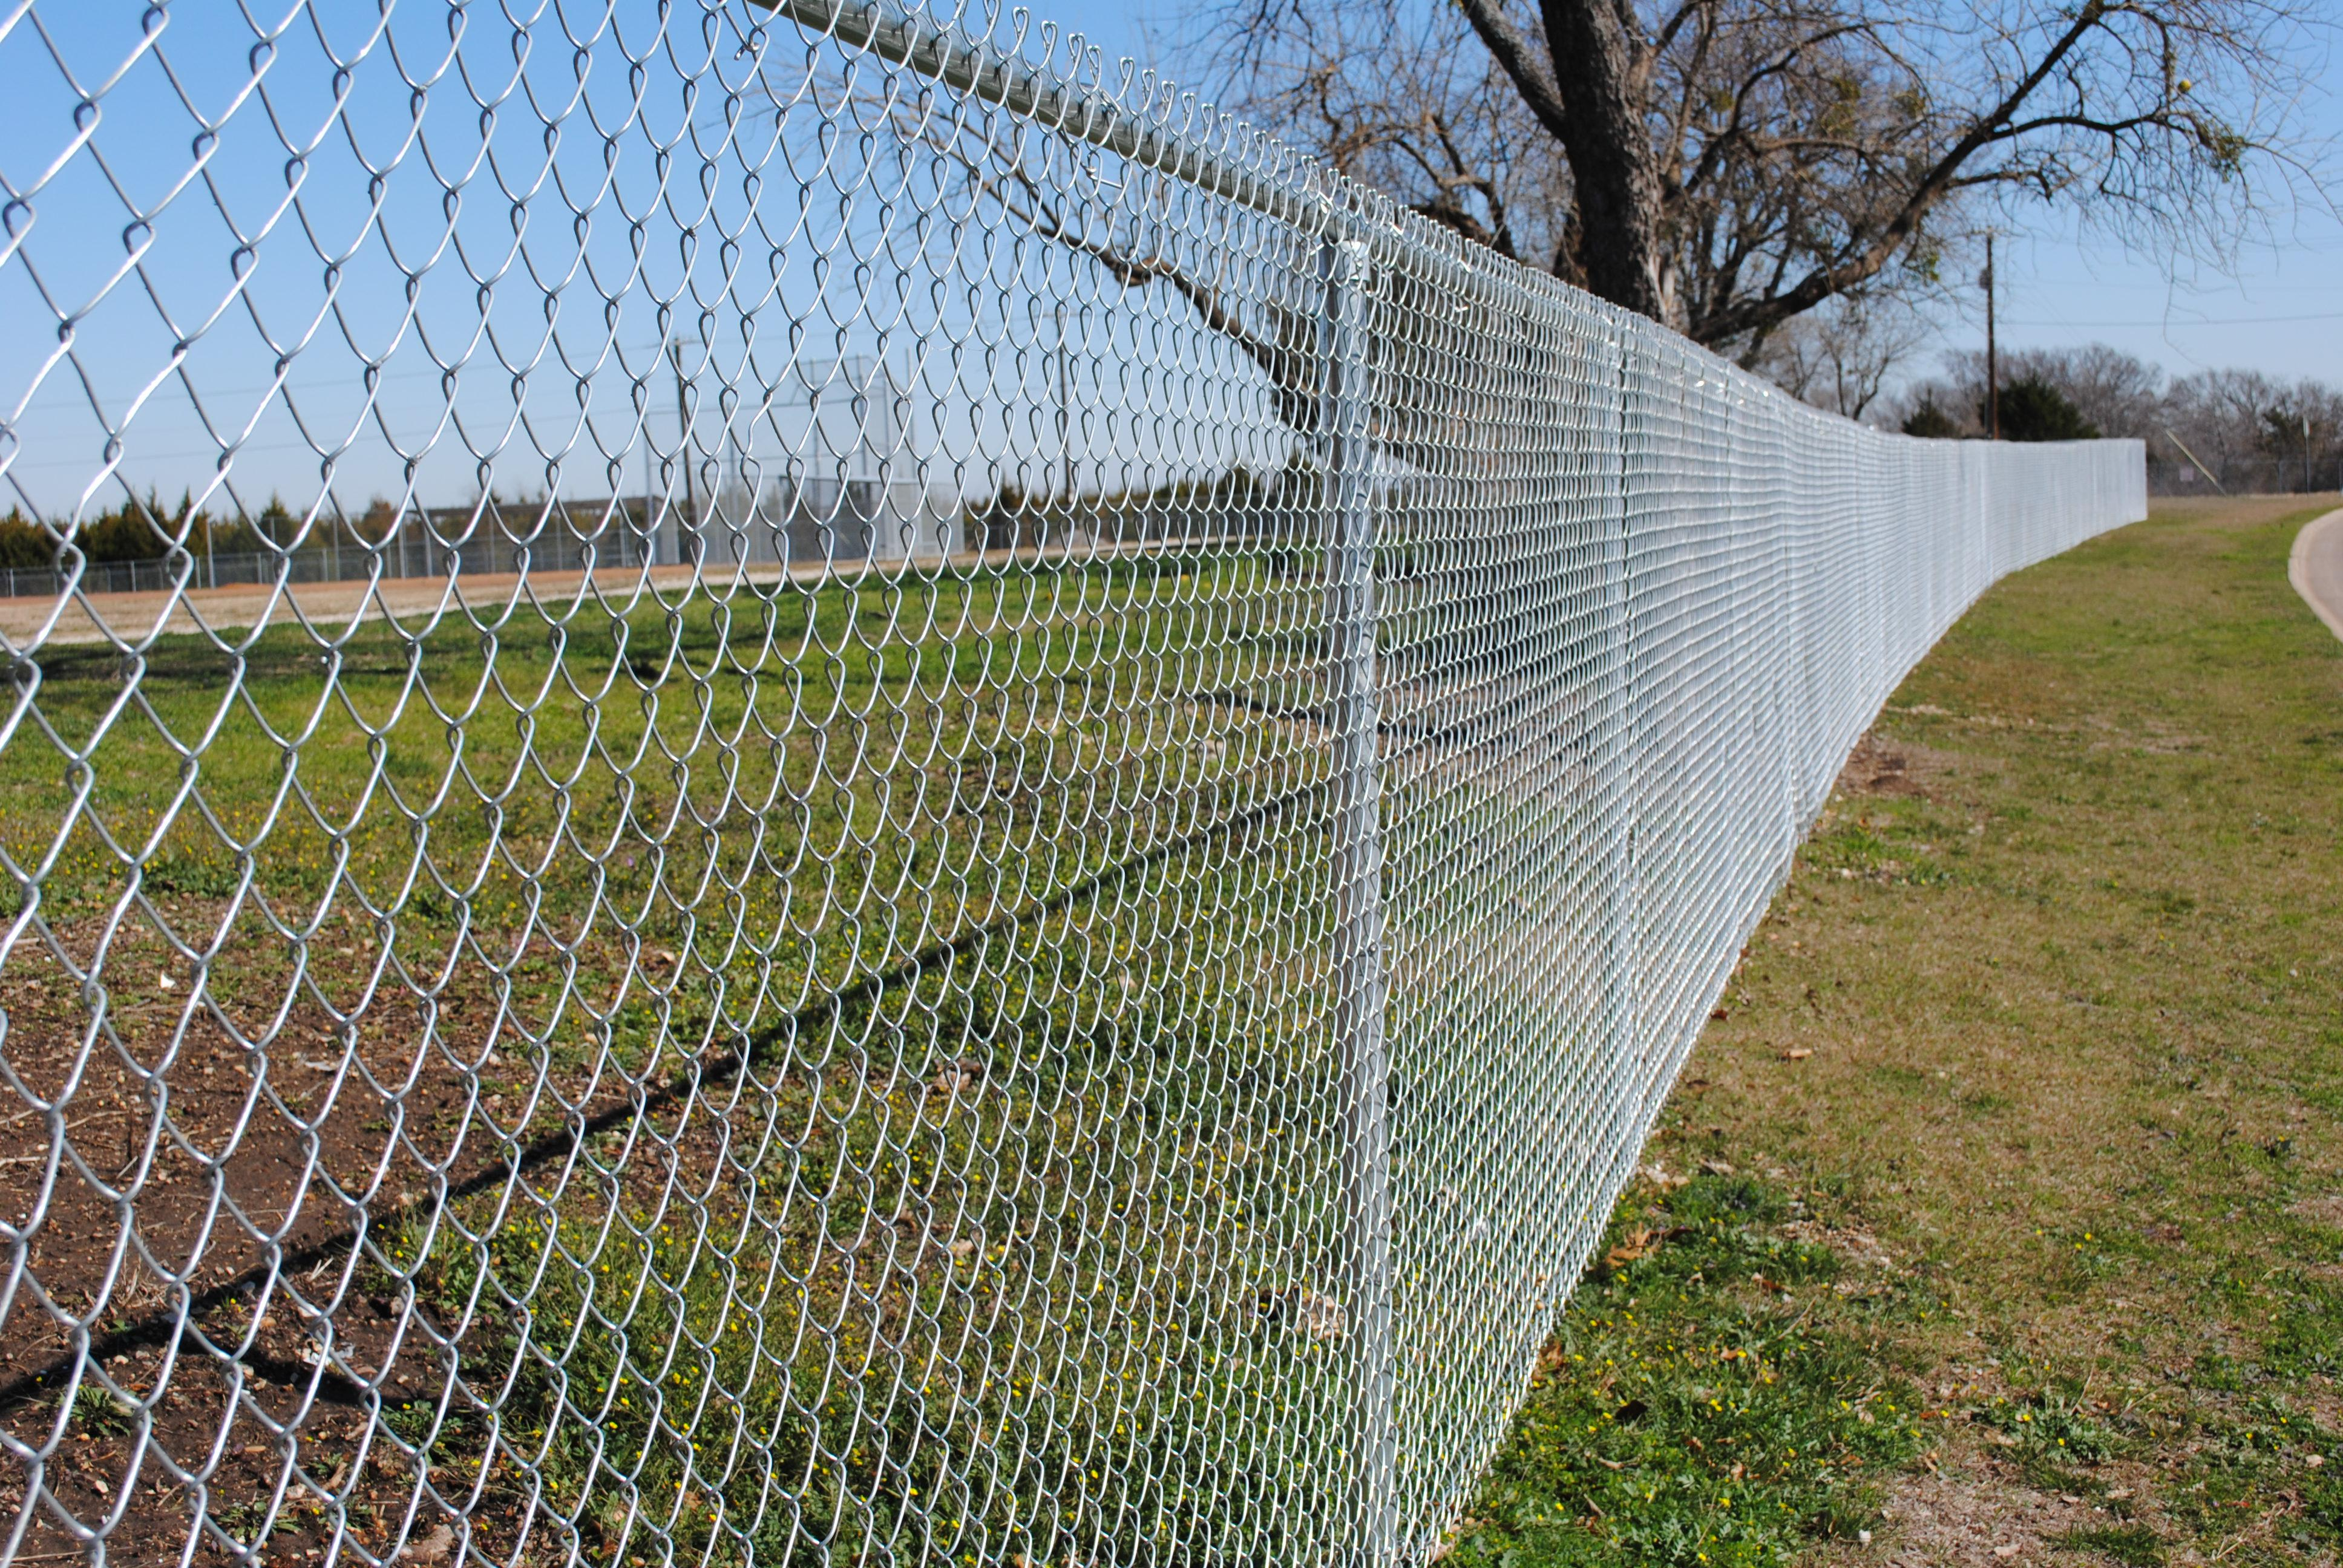 The Majority of Ordinary Soldiers in the Fence--Chain Link Fence